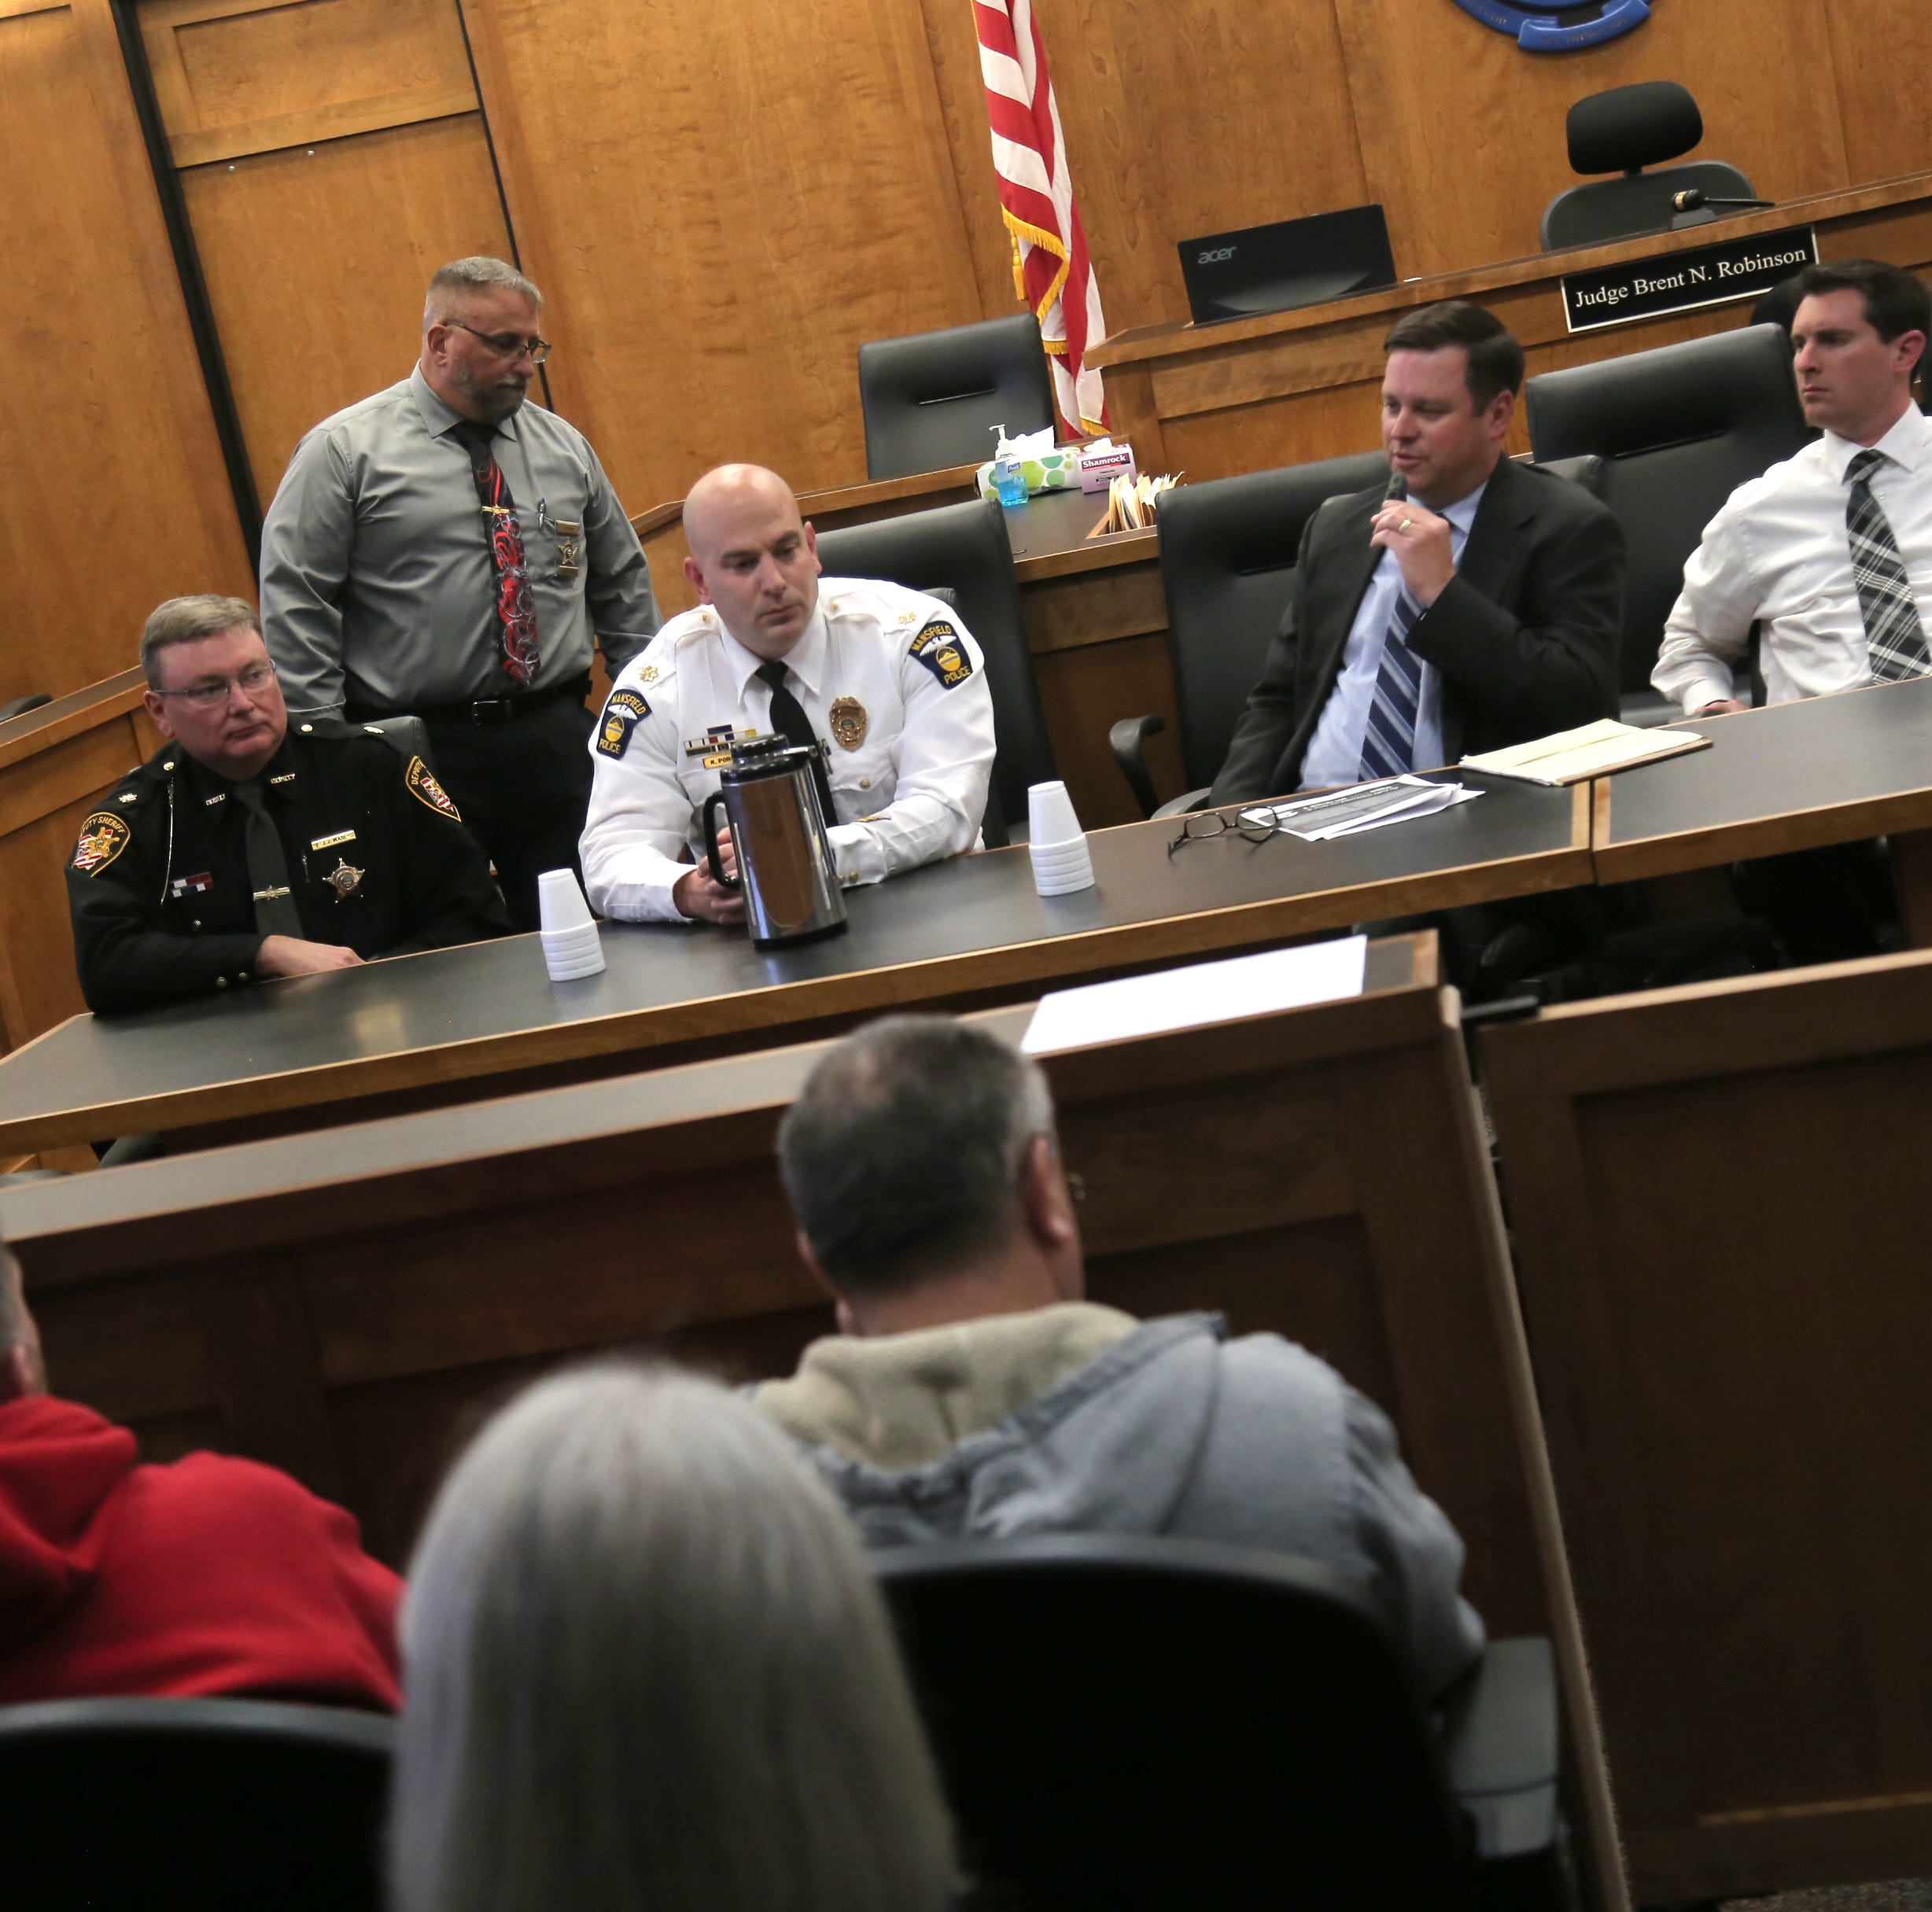 Common Pleas Judge Robinson hosts town hall on Issue 1